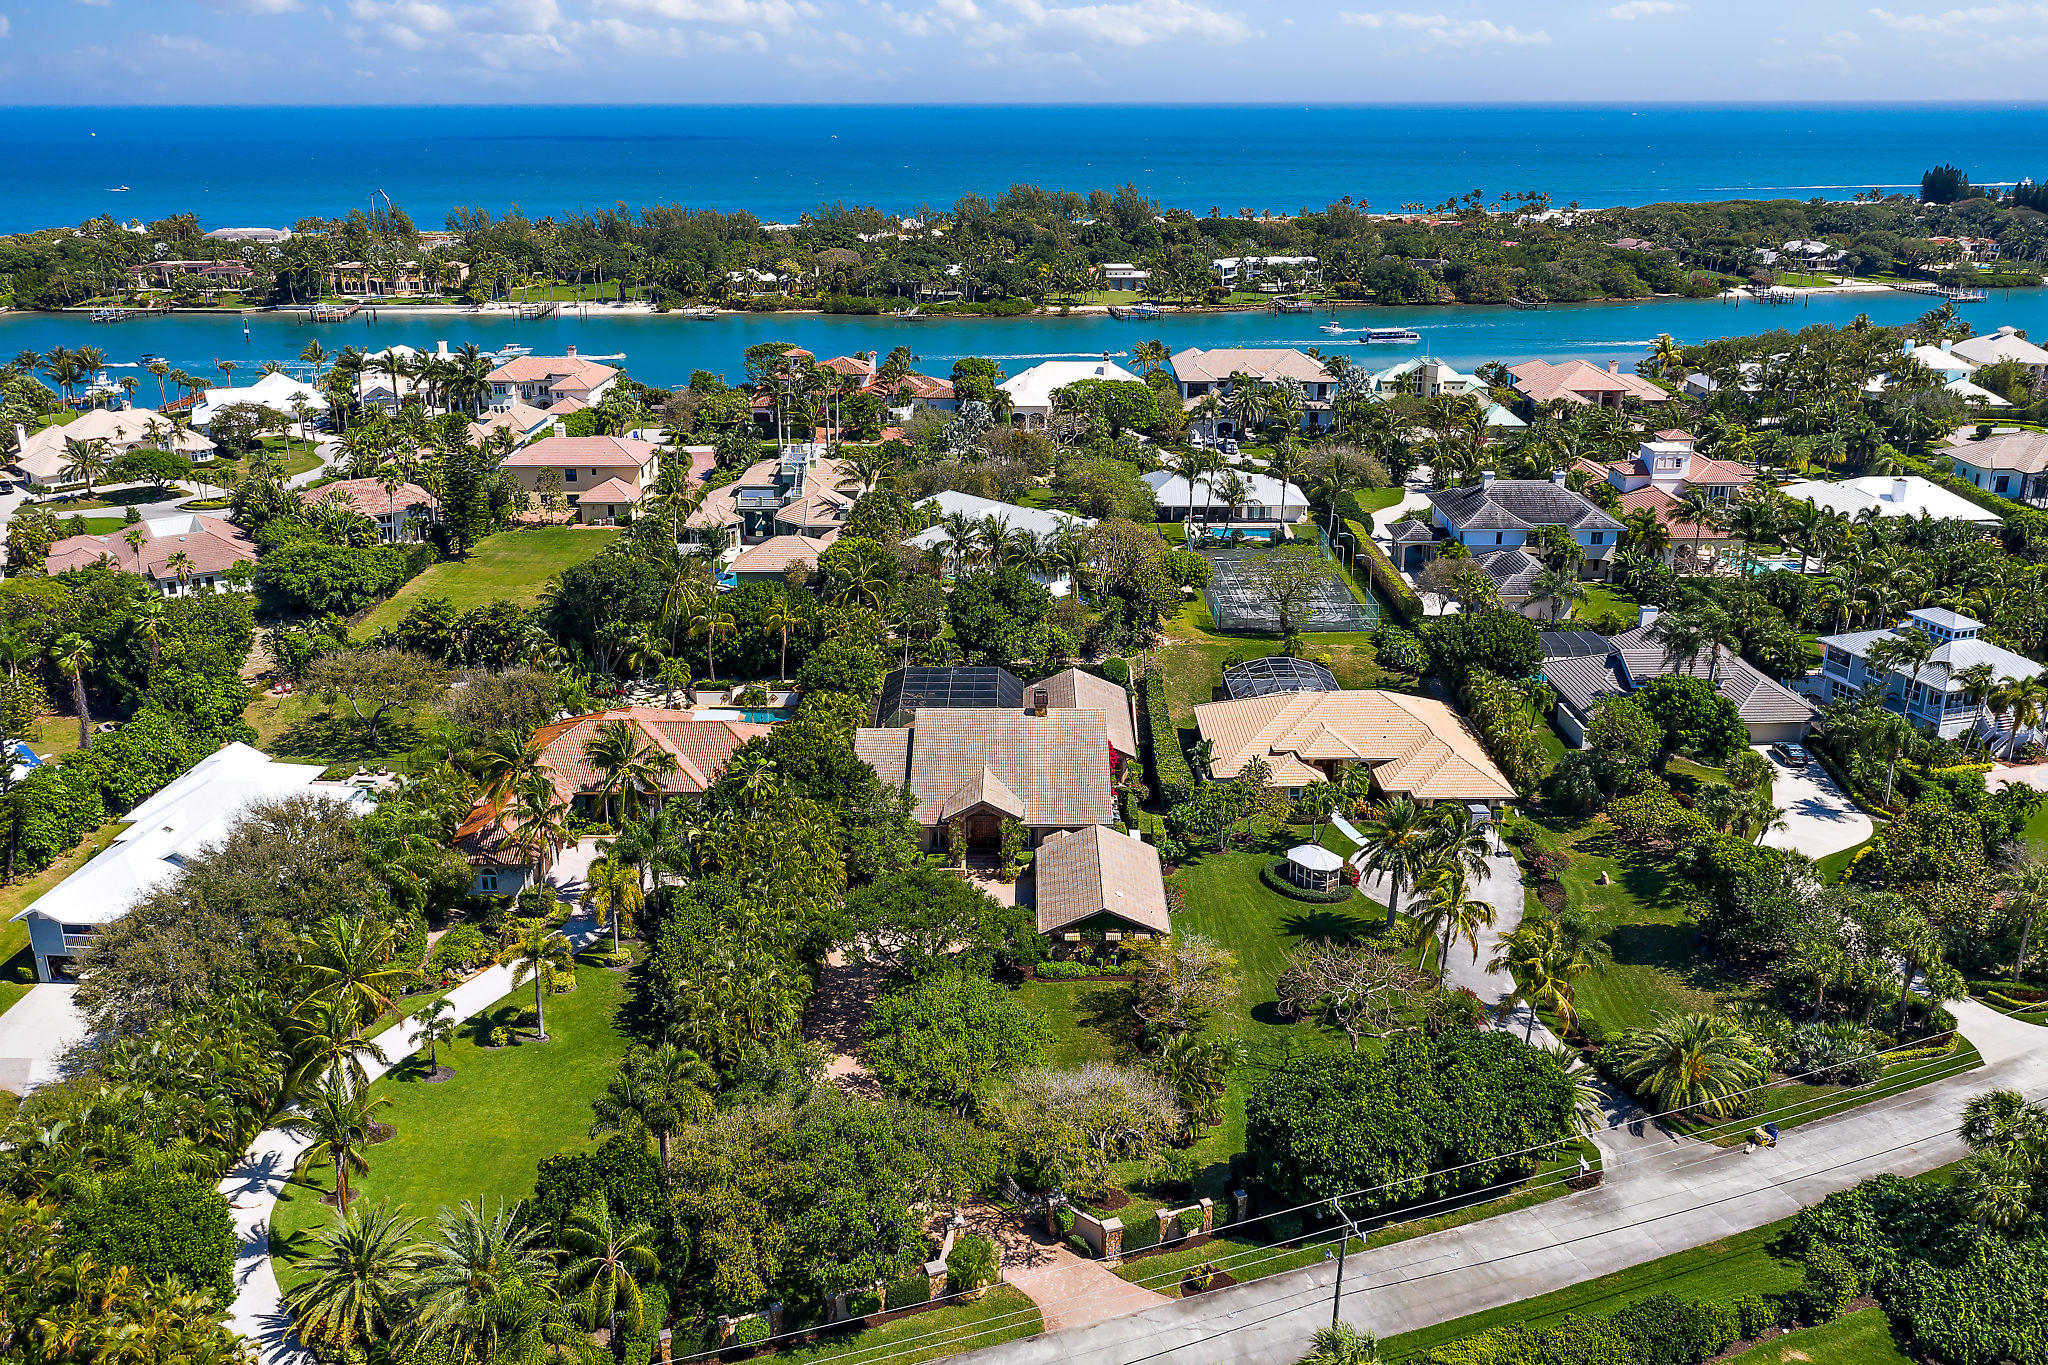 New Home for sale at 17361 Indian Hills Drive in Tequesta